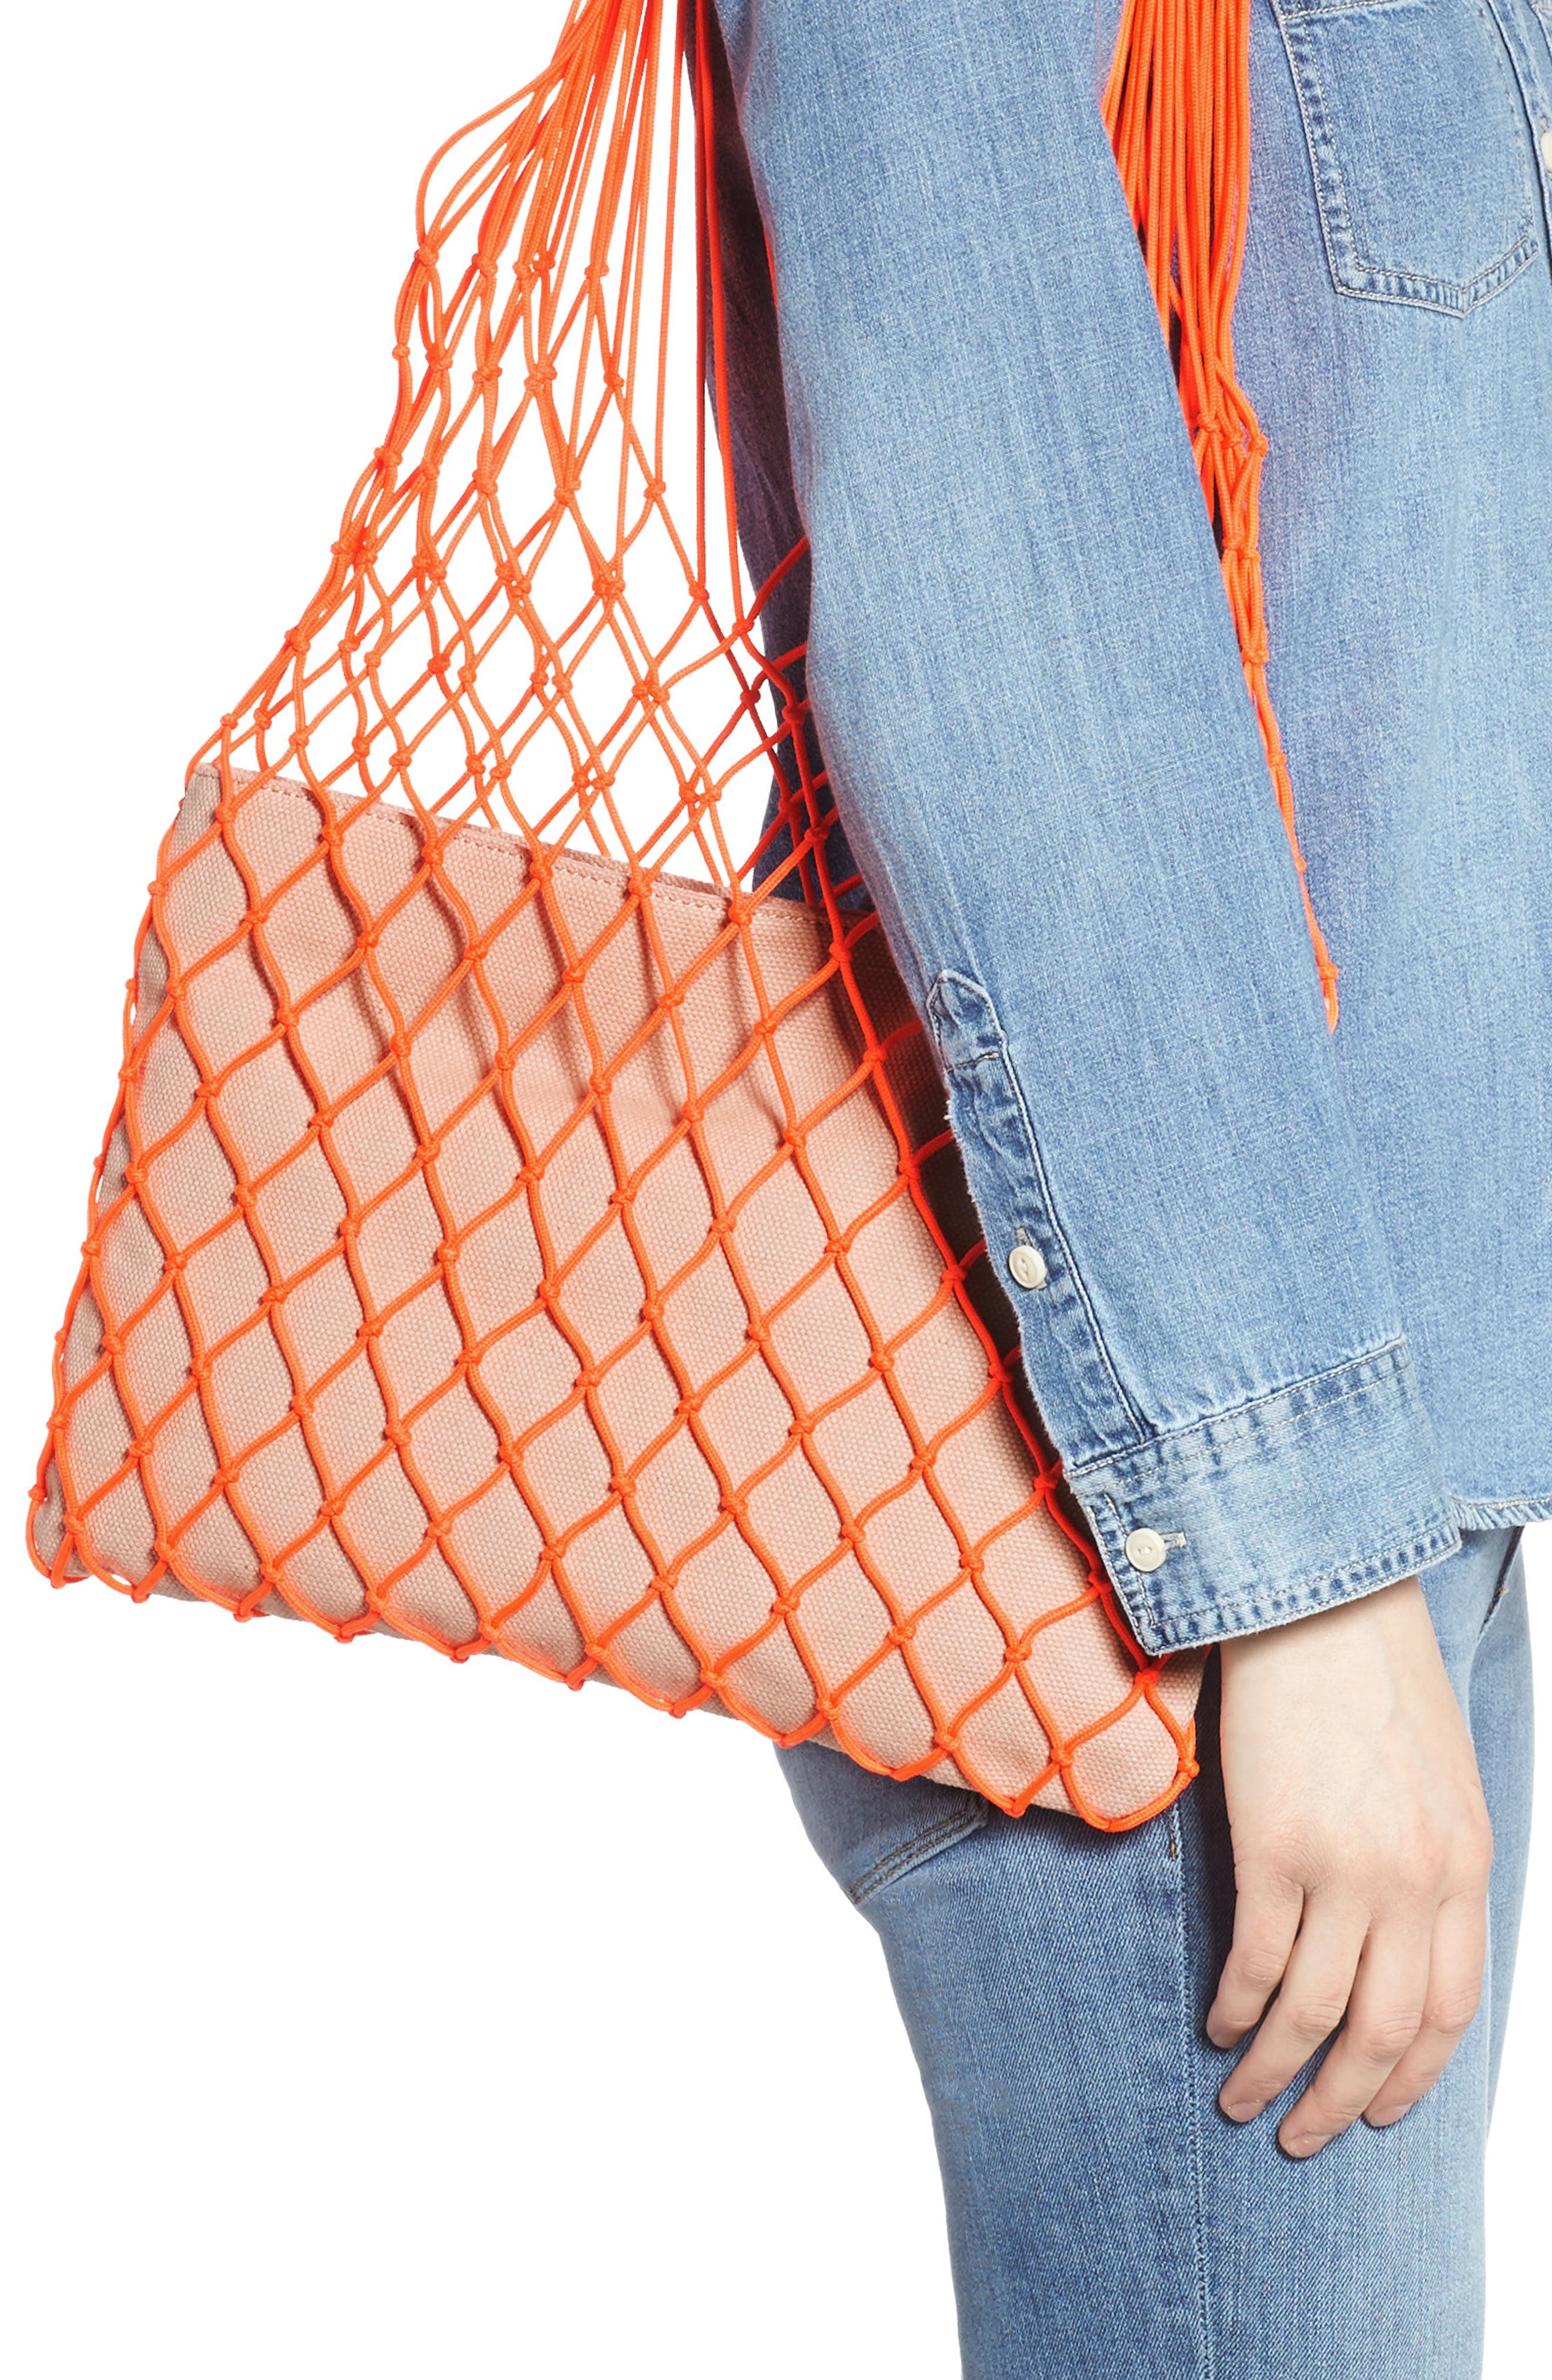 VINCE CAMUTO, Zest Tote, Alternate thumbnail 2, color, FIERY CORAL